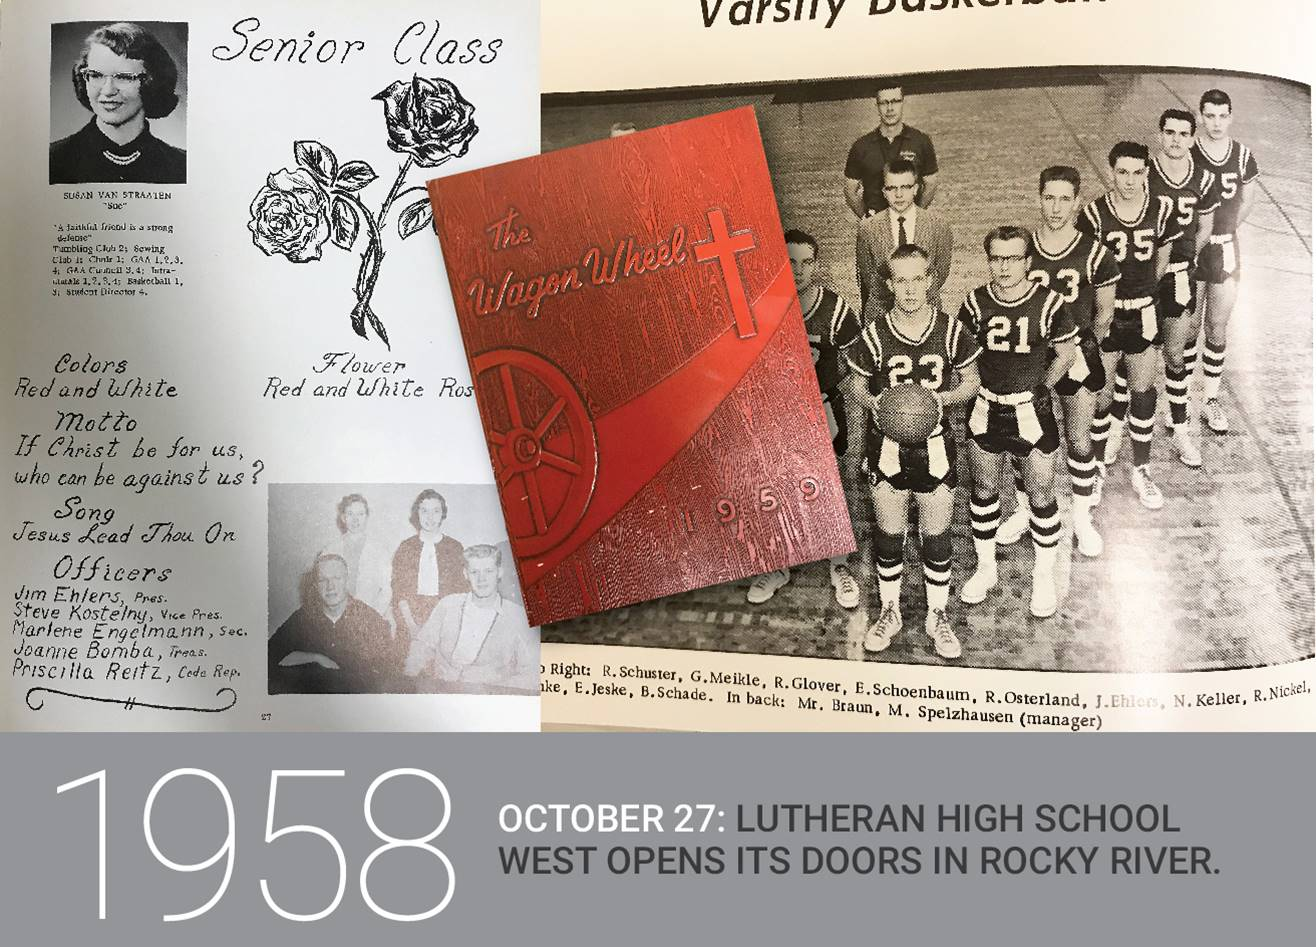 History-1958-Lutheran-West-Opens